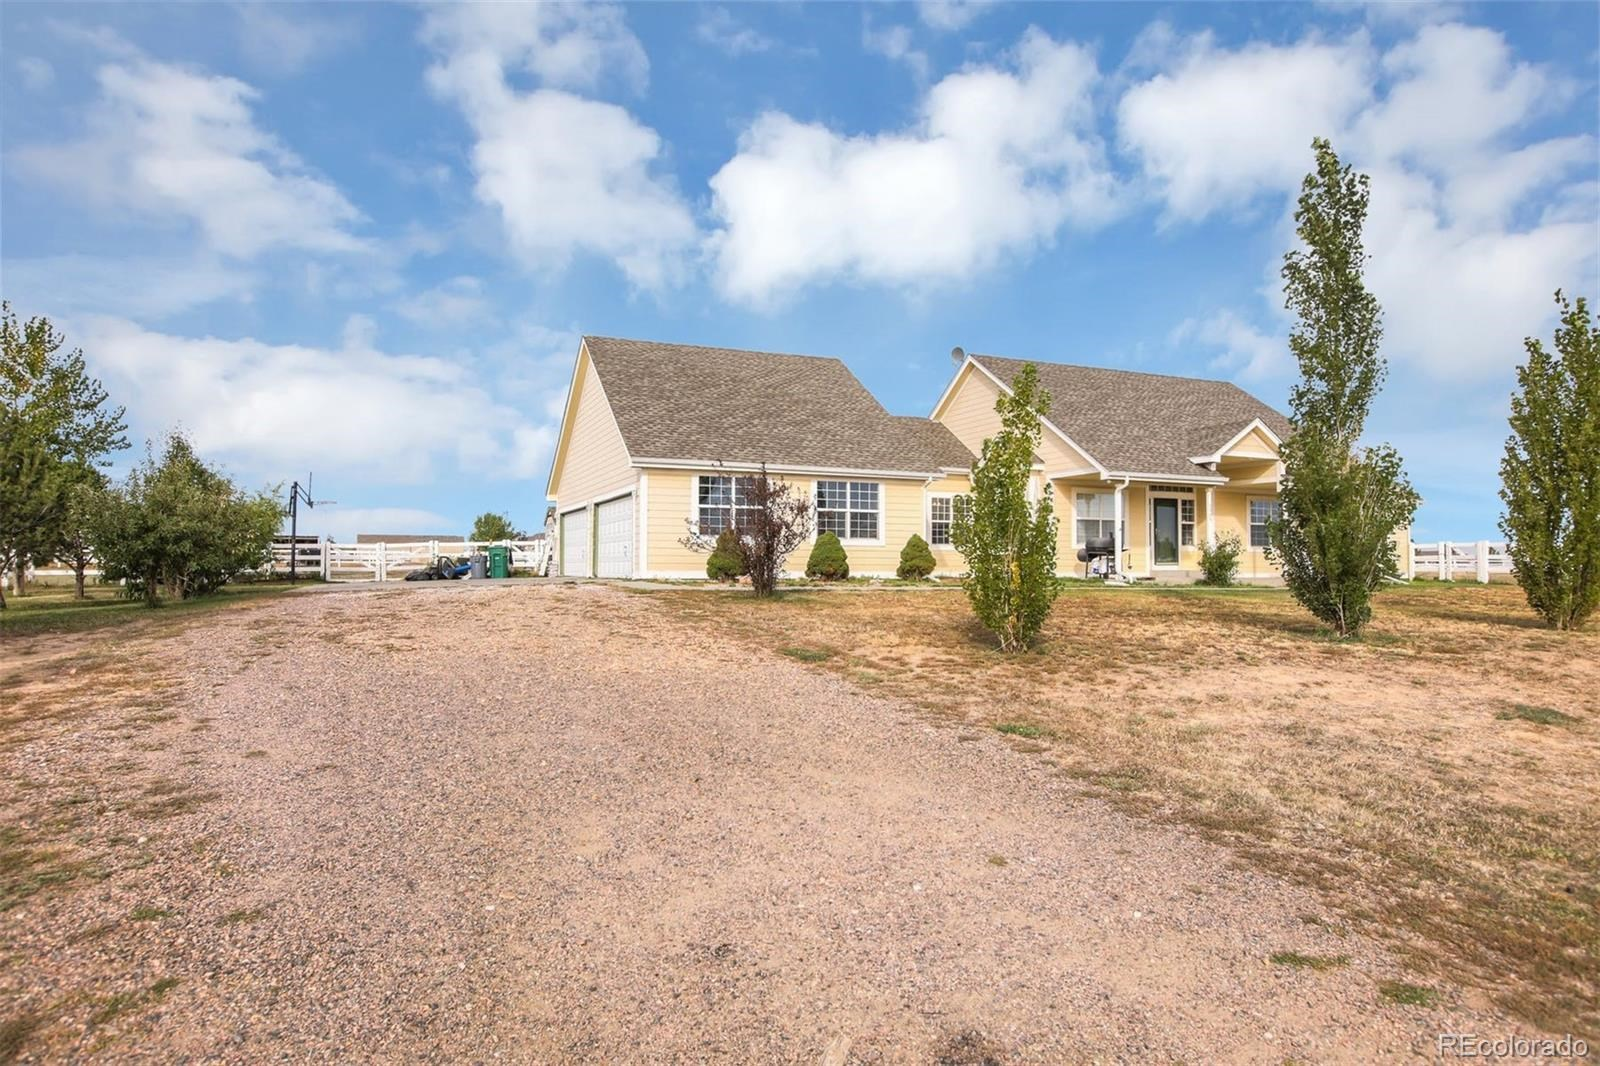 MLS# 3439145 - 28 - 3975 Sharilane Street, Strasburg, CO 80136